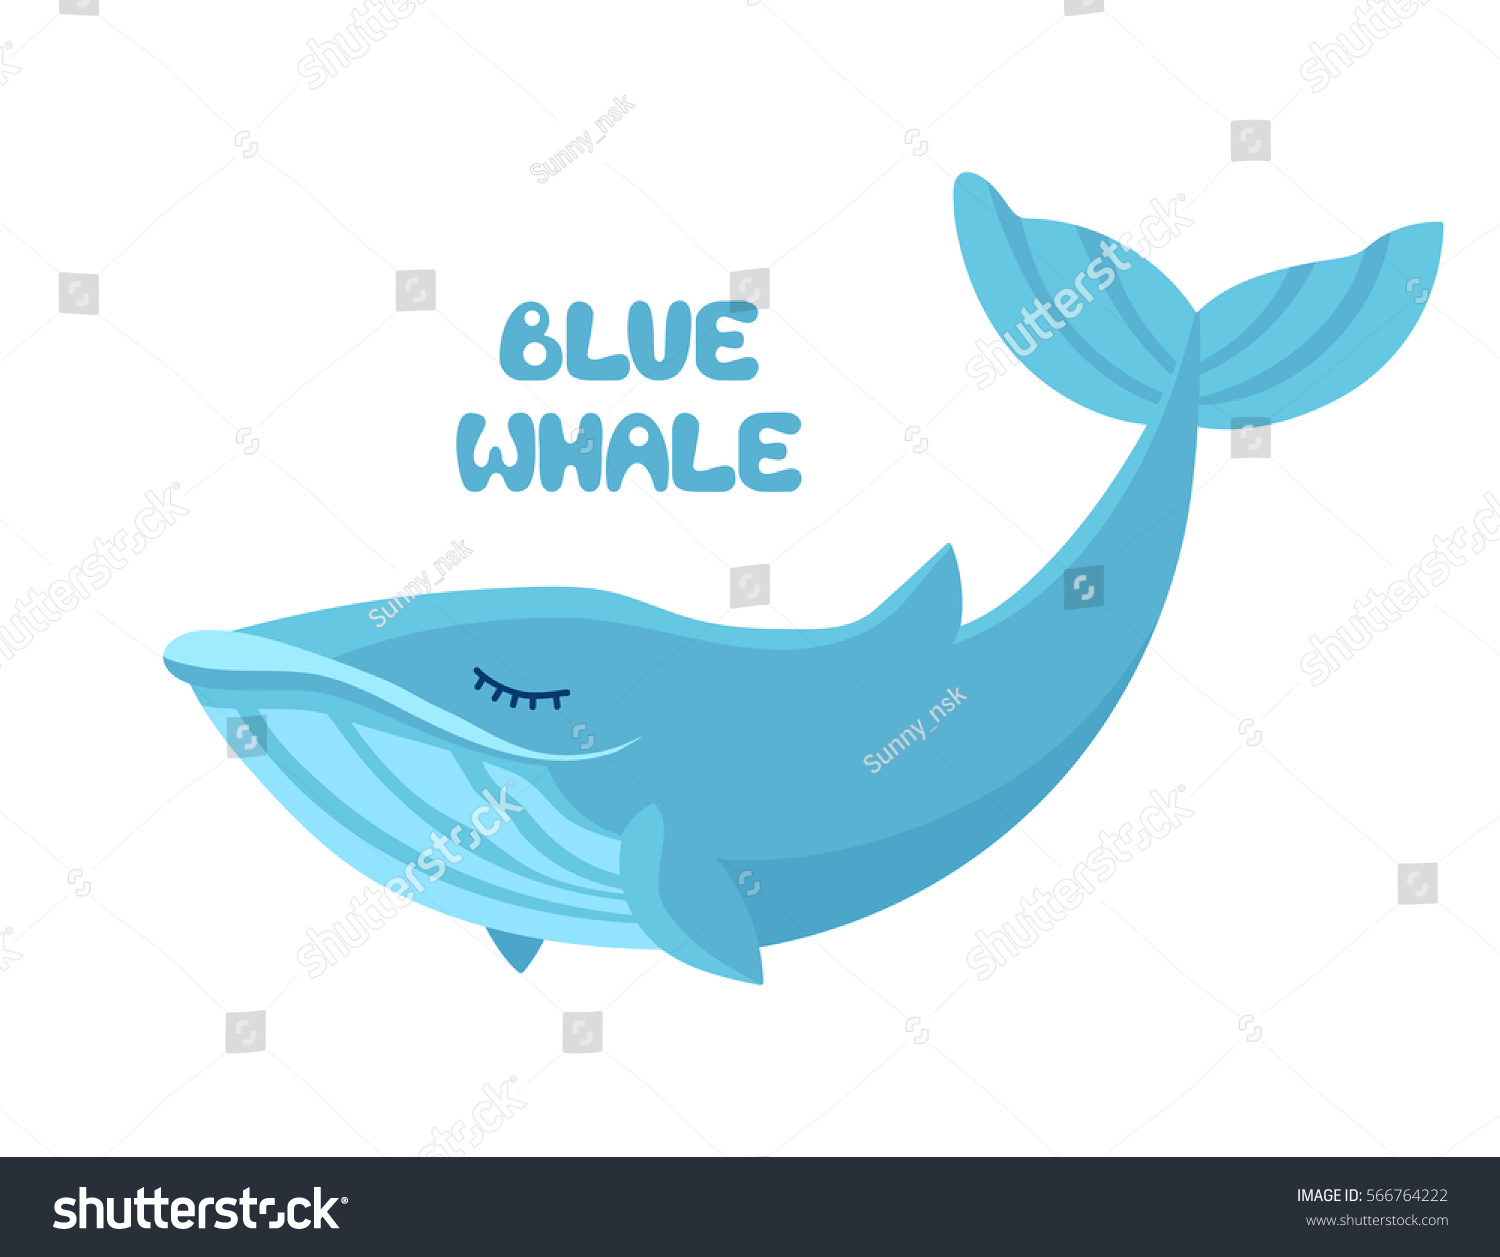 Cute whale in water cartoon isolated illustration stock photography - Vector Cartoon Cute Blue Whale Isolated On White Background